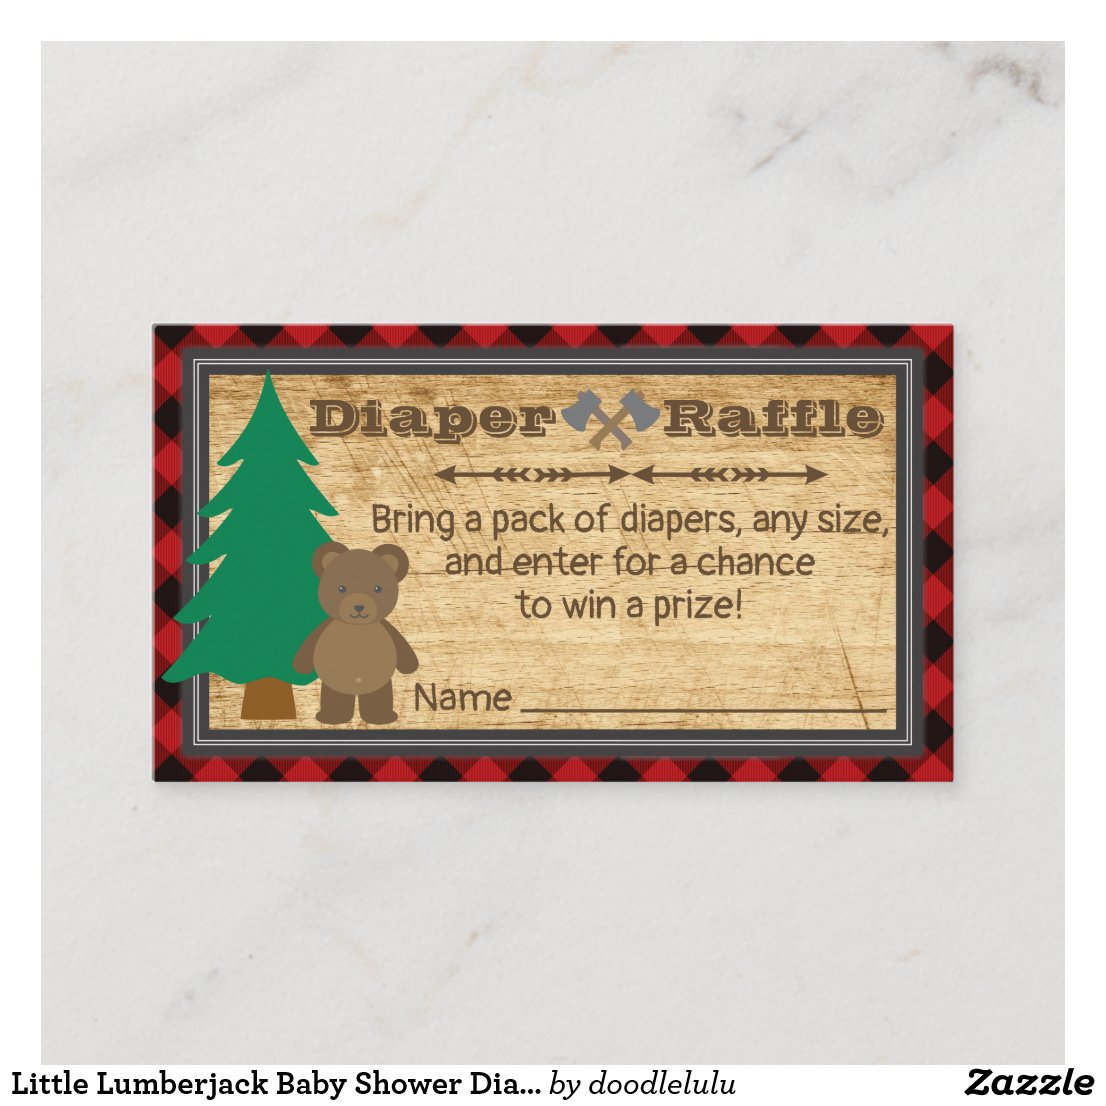 wix_zazzle_collection_placeholder.jpg